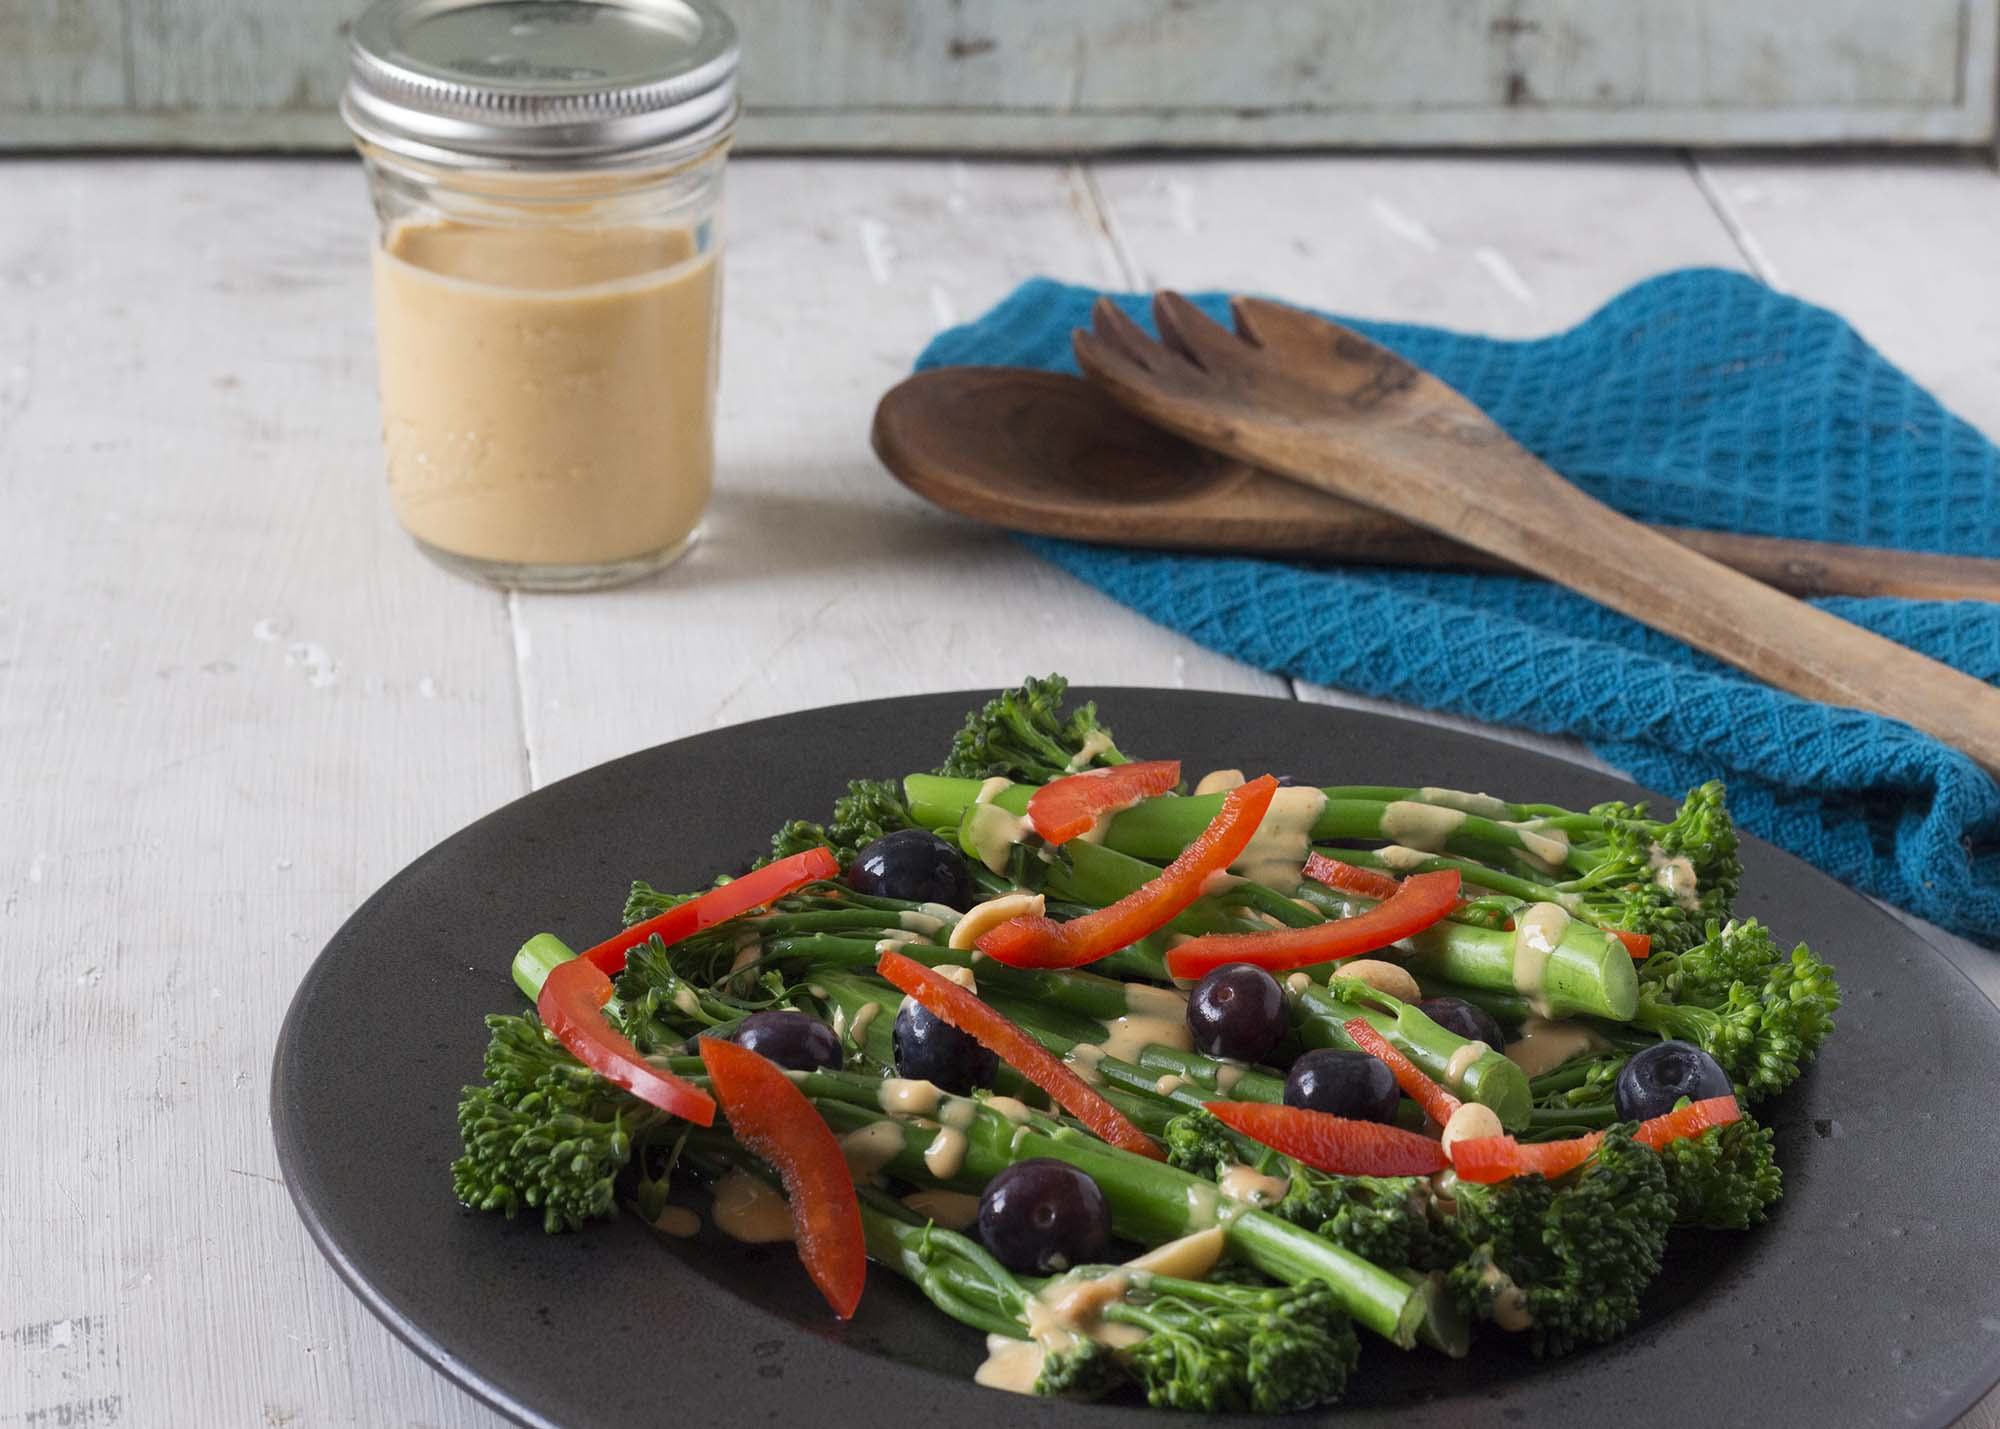 Broccolisalat med peanutdressing